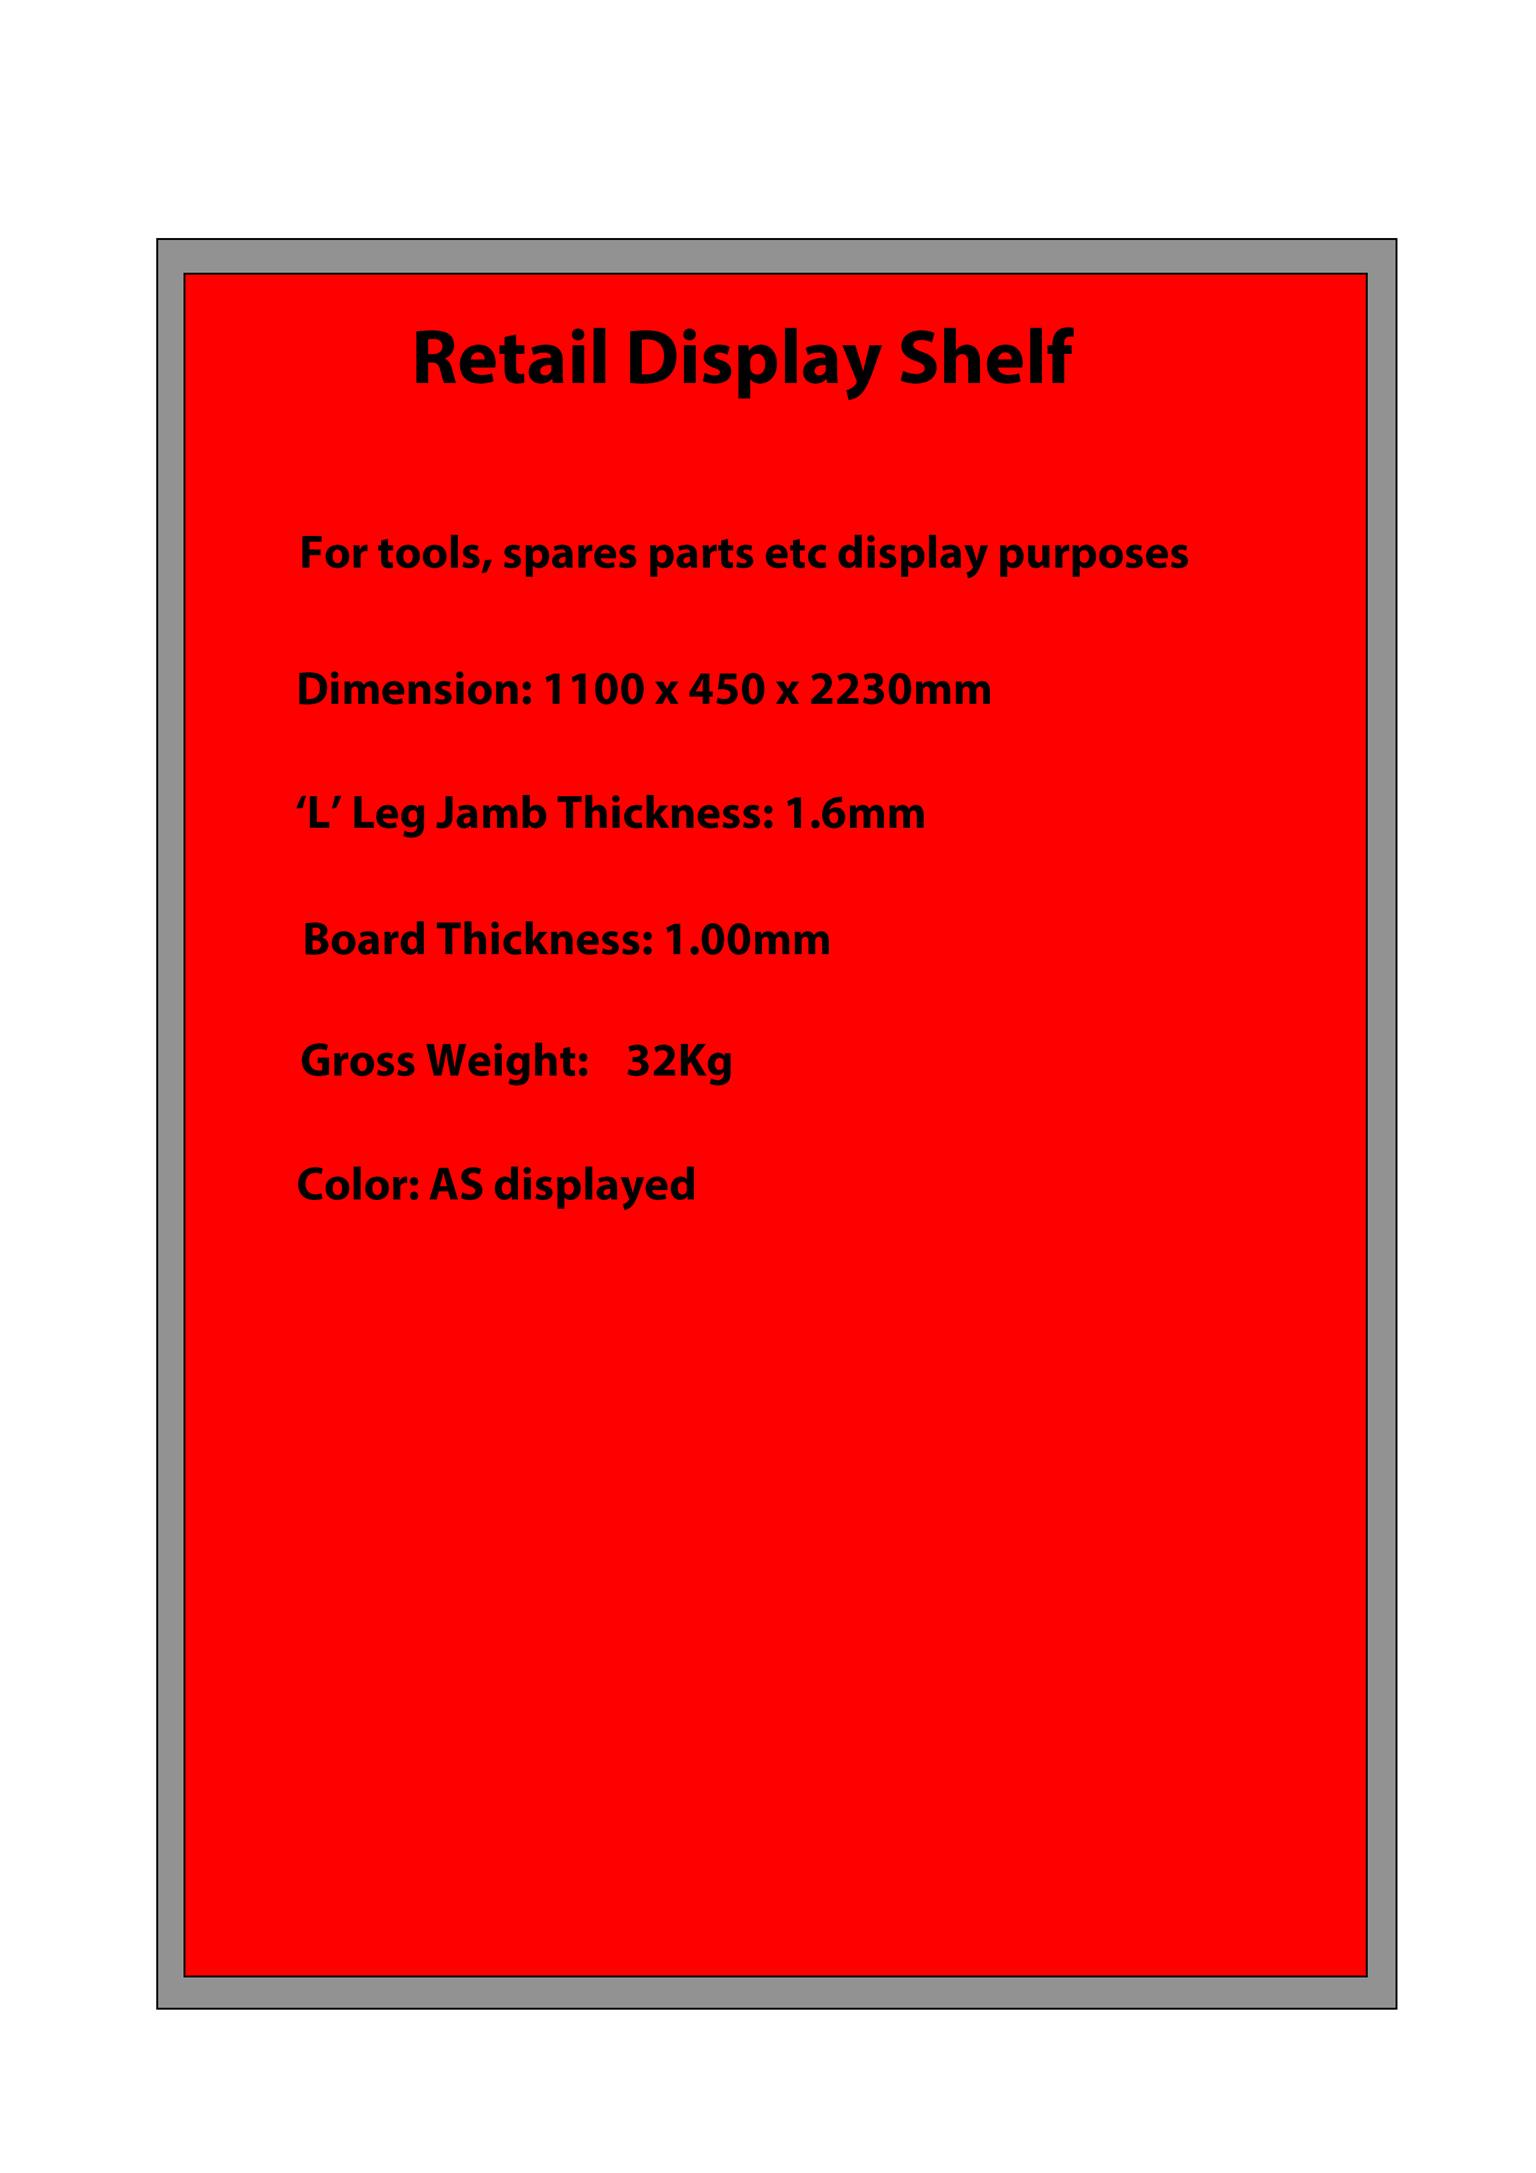 Retail Light Box Display Shelf